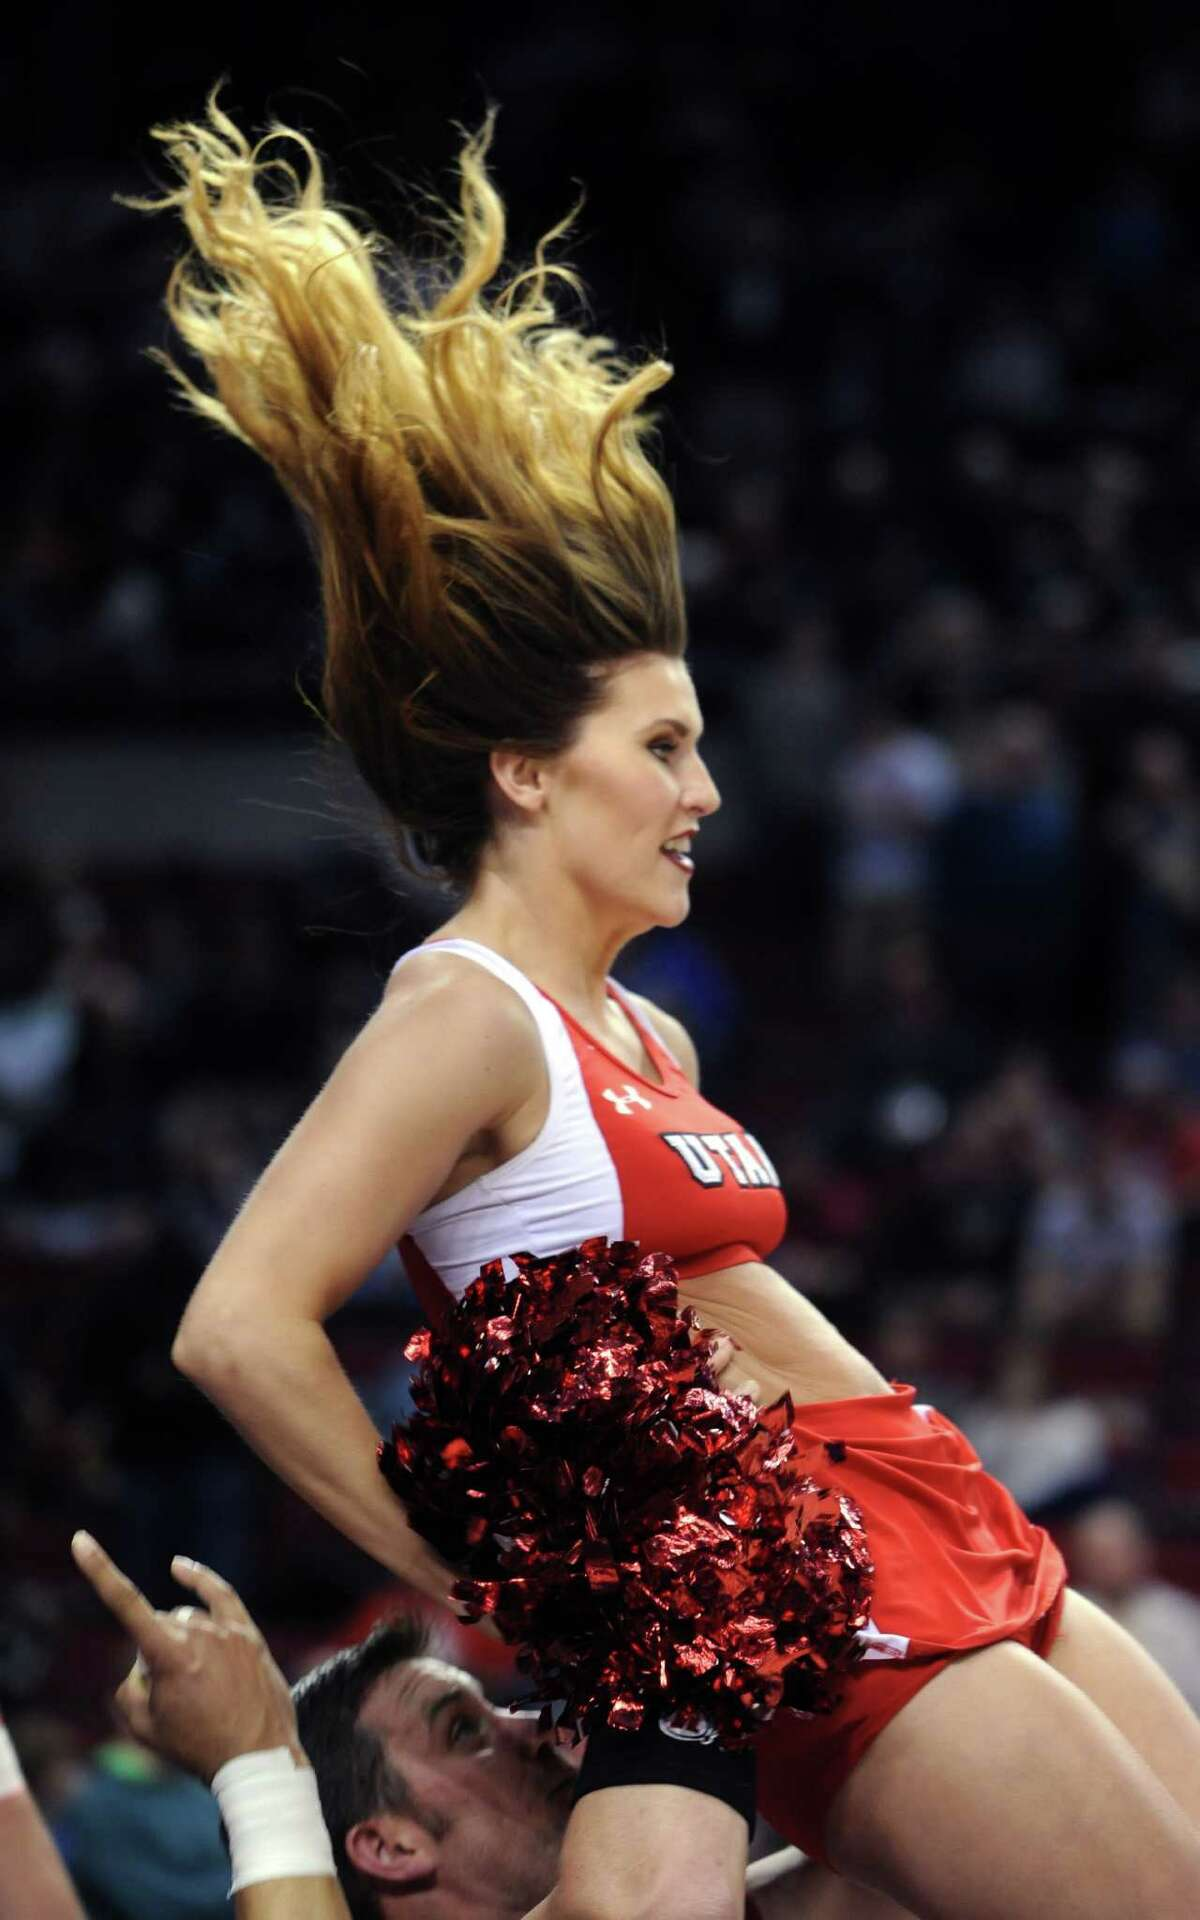 A Utah cheerleaders' hair flies during a routine in the first half of an NCAA college basketball tournament round of 32 game against Georgetown in Portland, Ore., Saturday, March 21, 2015.